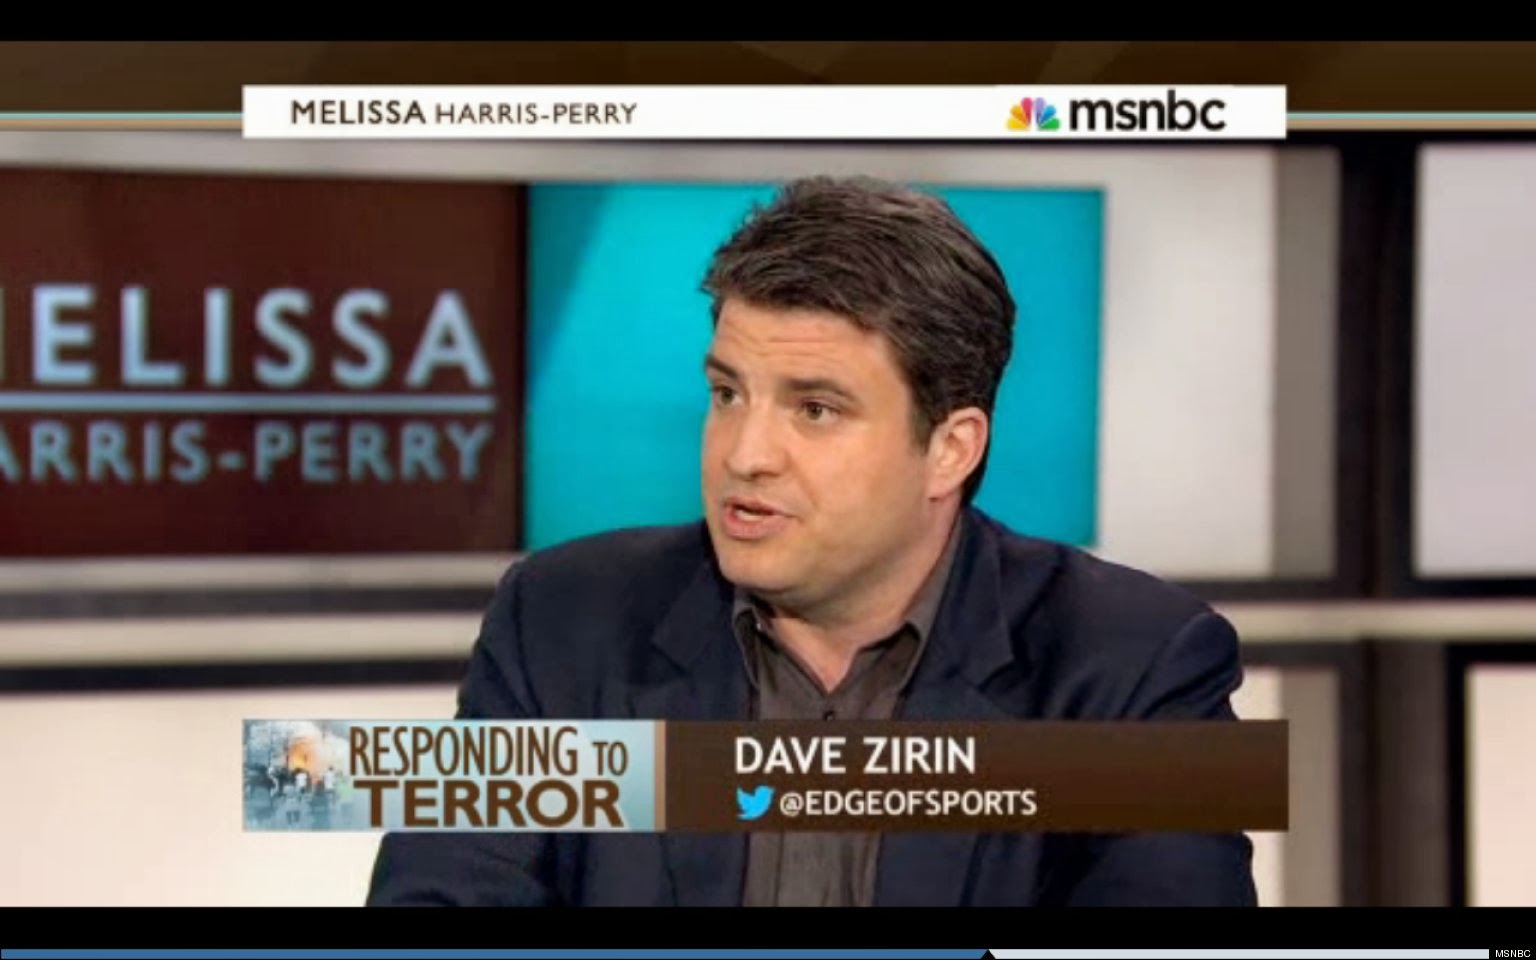 Dave Zirin the blog